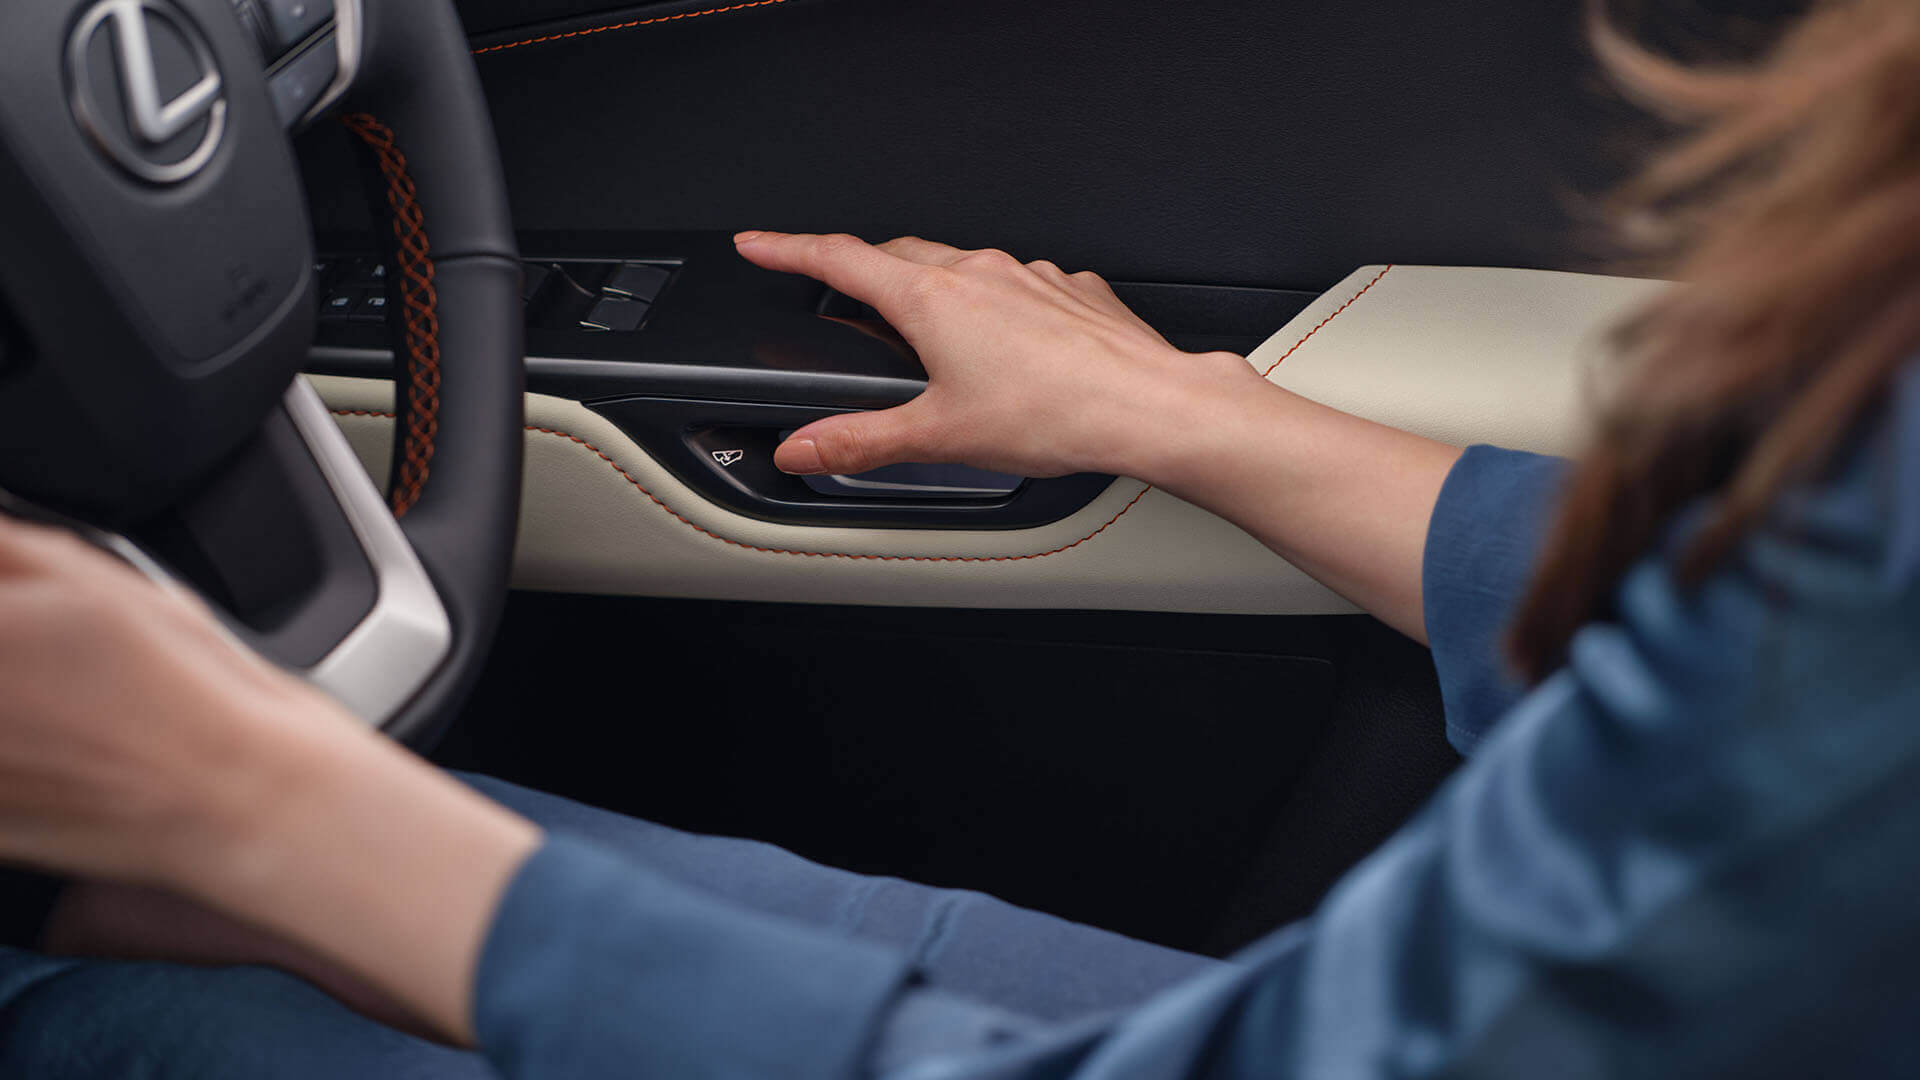 2021 lexus nx overview gallery lifestyle 01